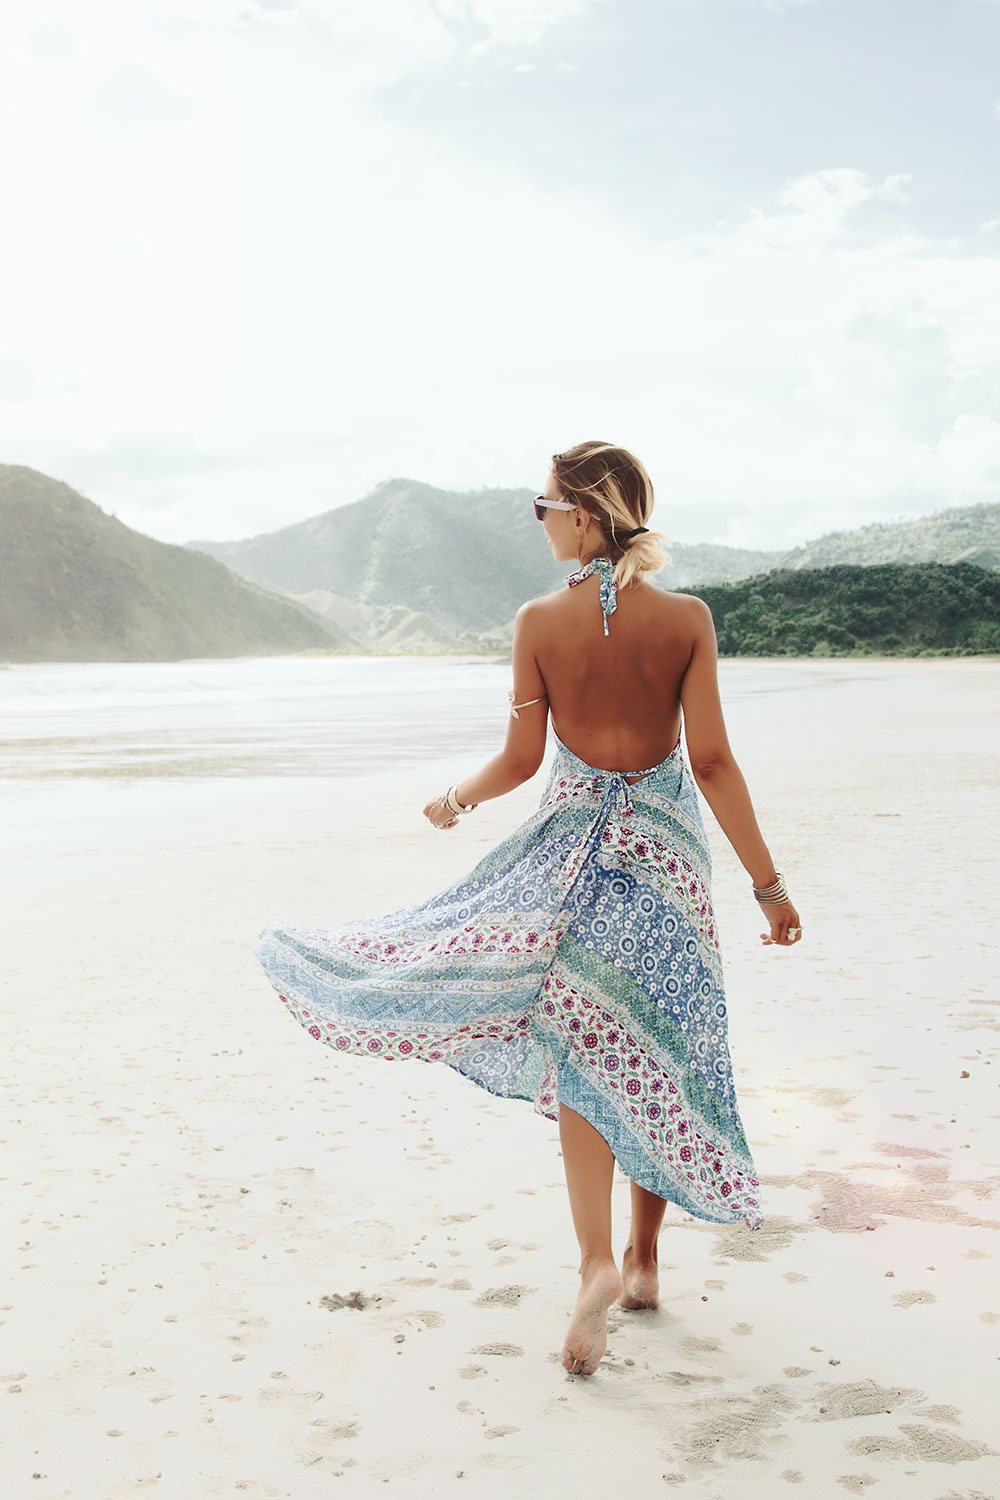 Hello Beaches Feminine WordPress theme